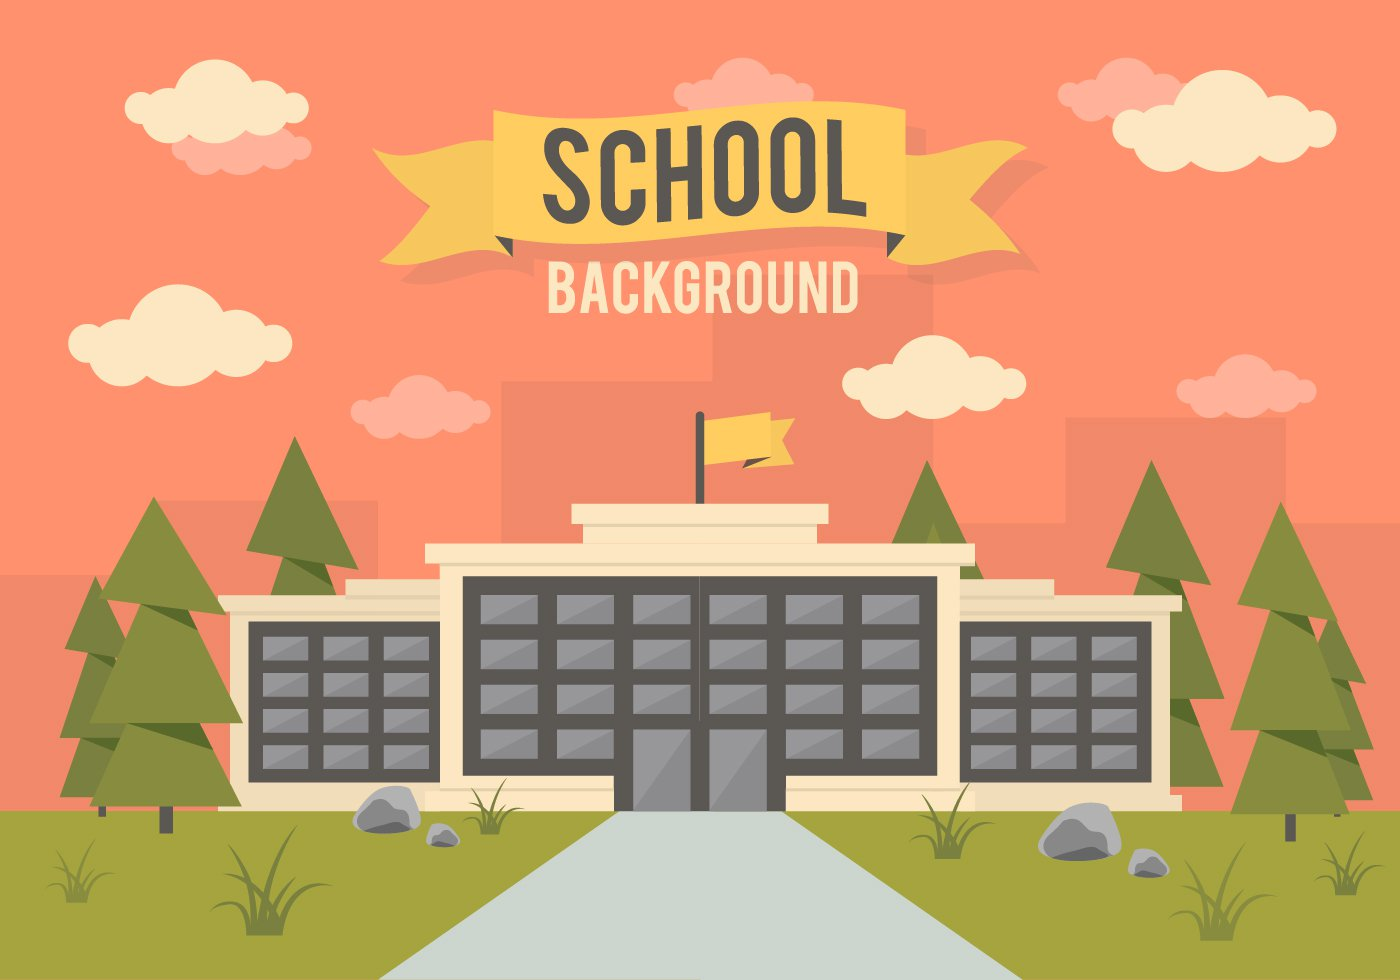 School Landscape Vector Background   Download 1400x980